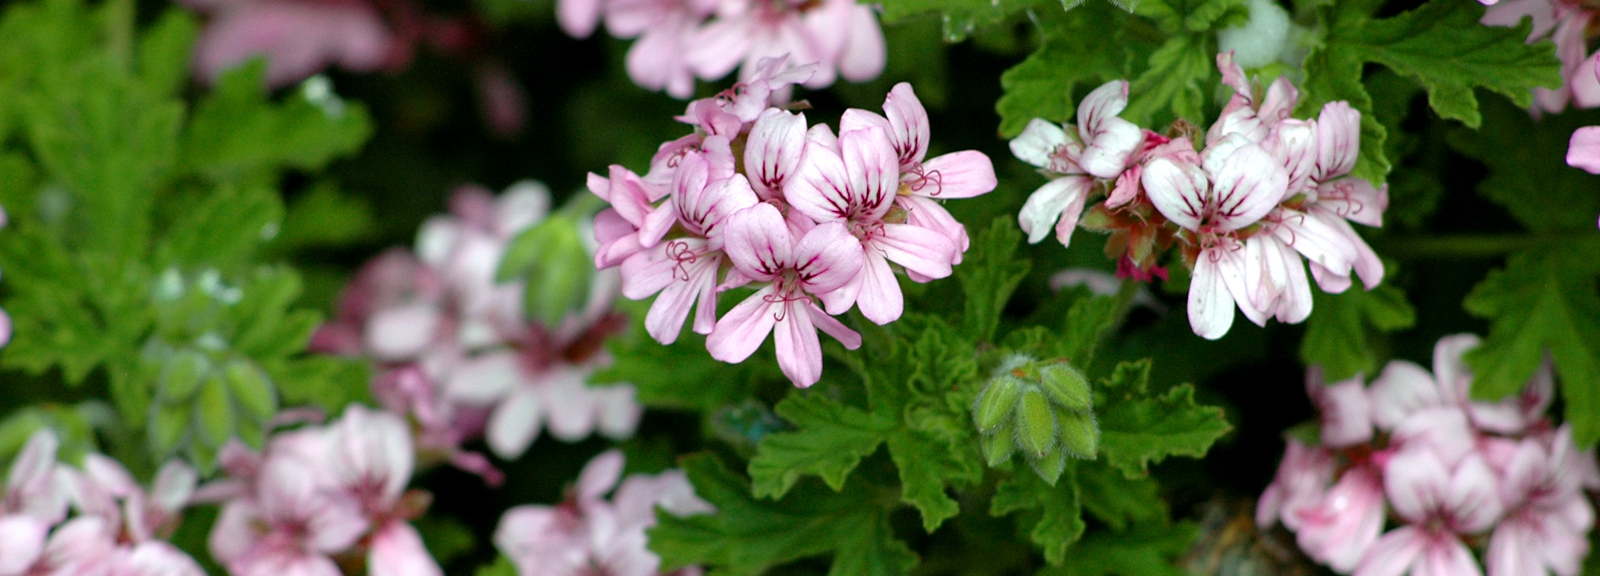 Pelargonium graveolens © CC BY-SA 2.5 - Eric Hunt